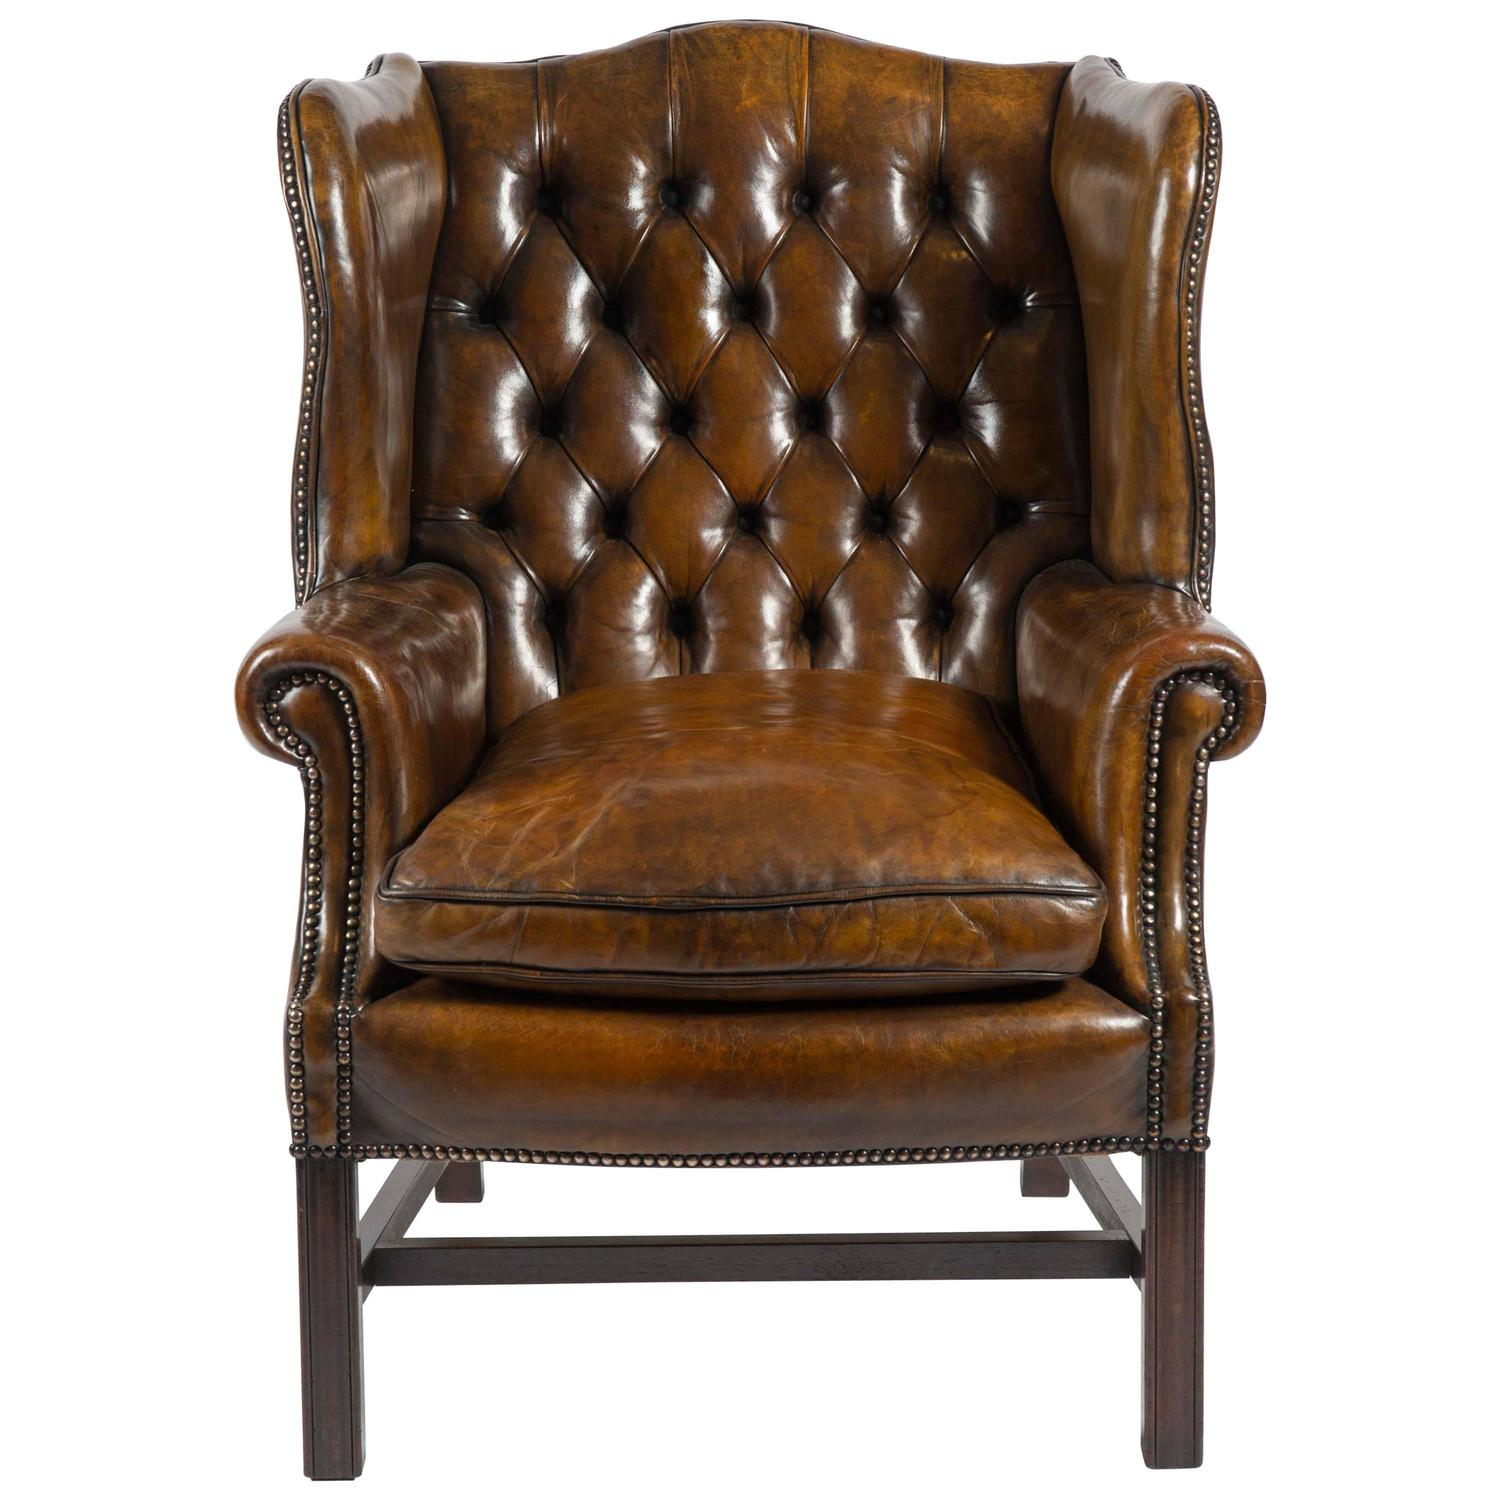 Early 20th Century Leather Buttoned Back Wing Chair at 1stdibs